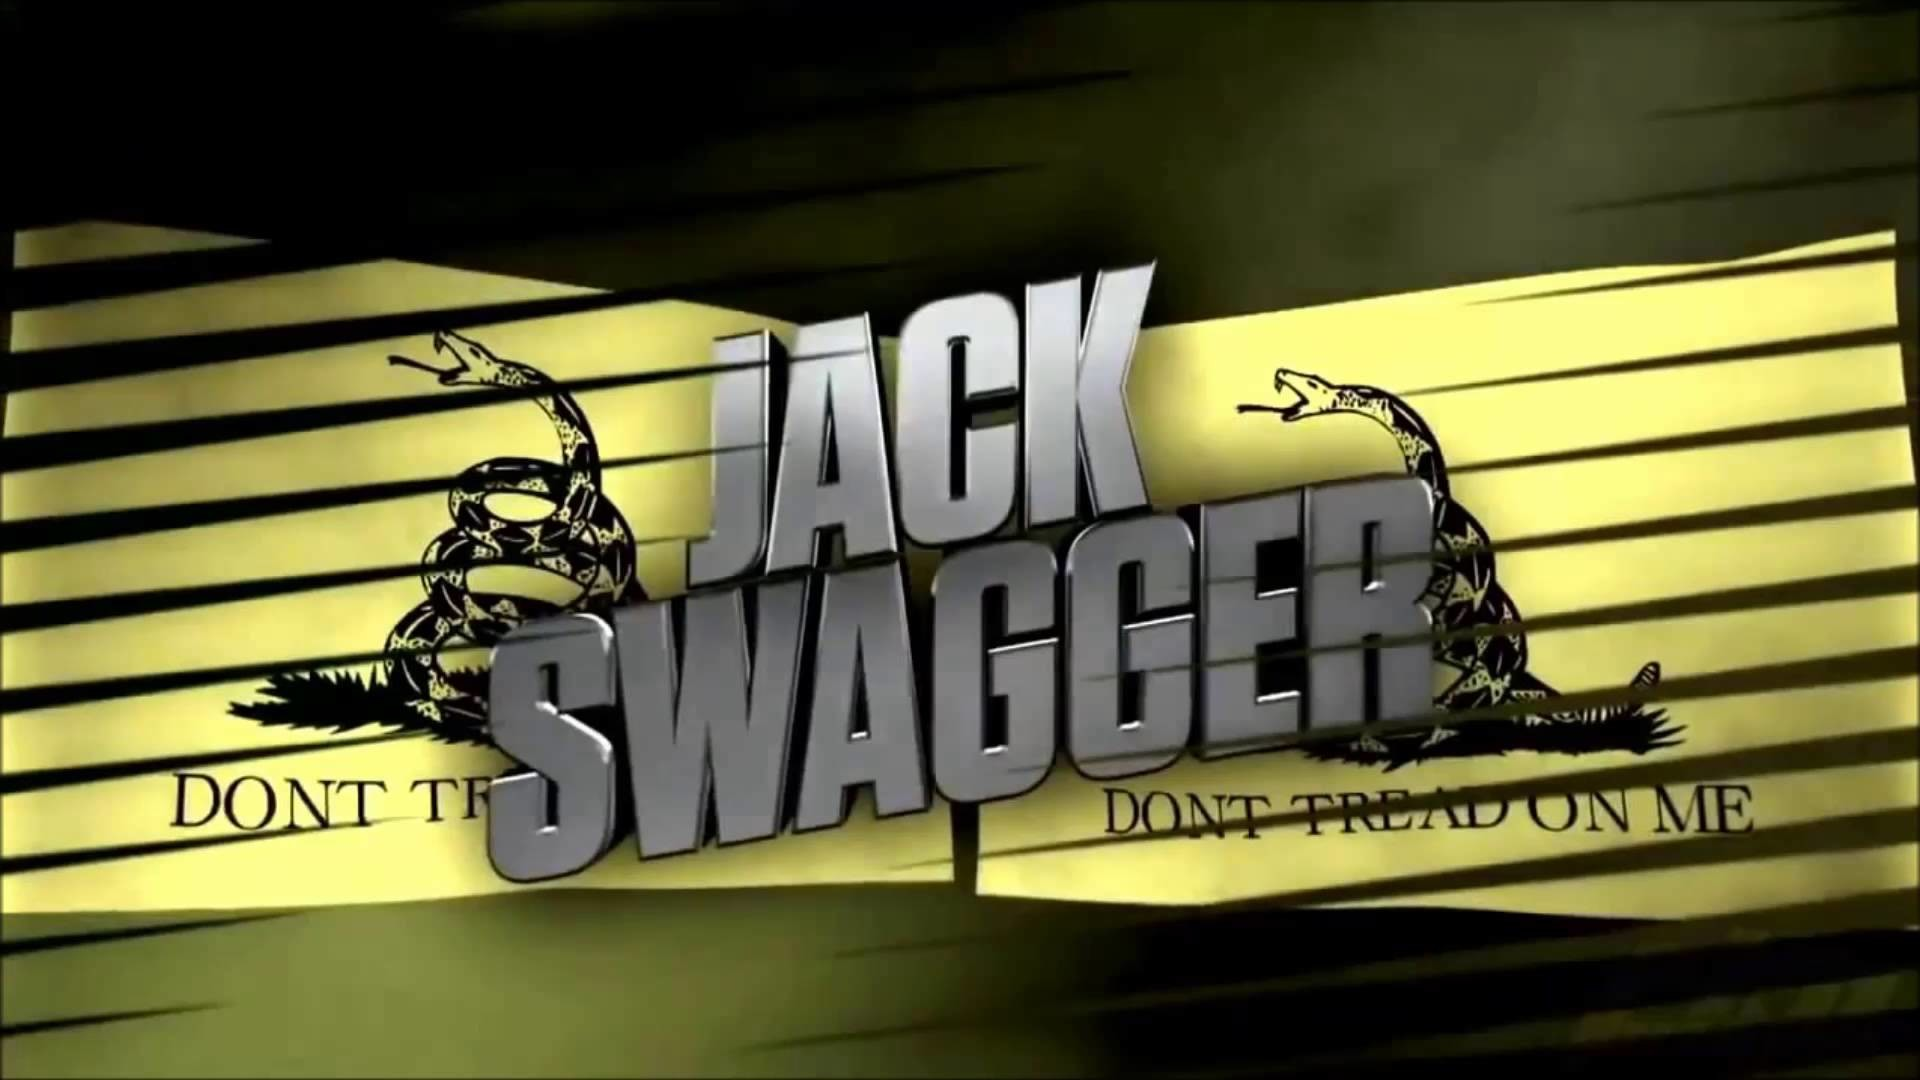 WWE Jack Swagger New Theme Song 2013 (We The People)